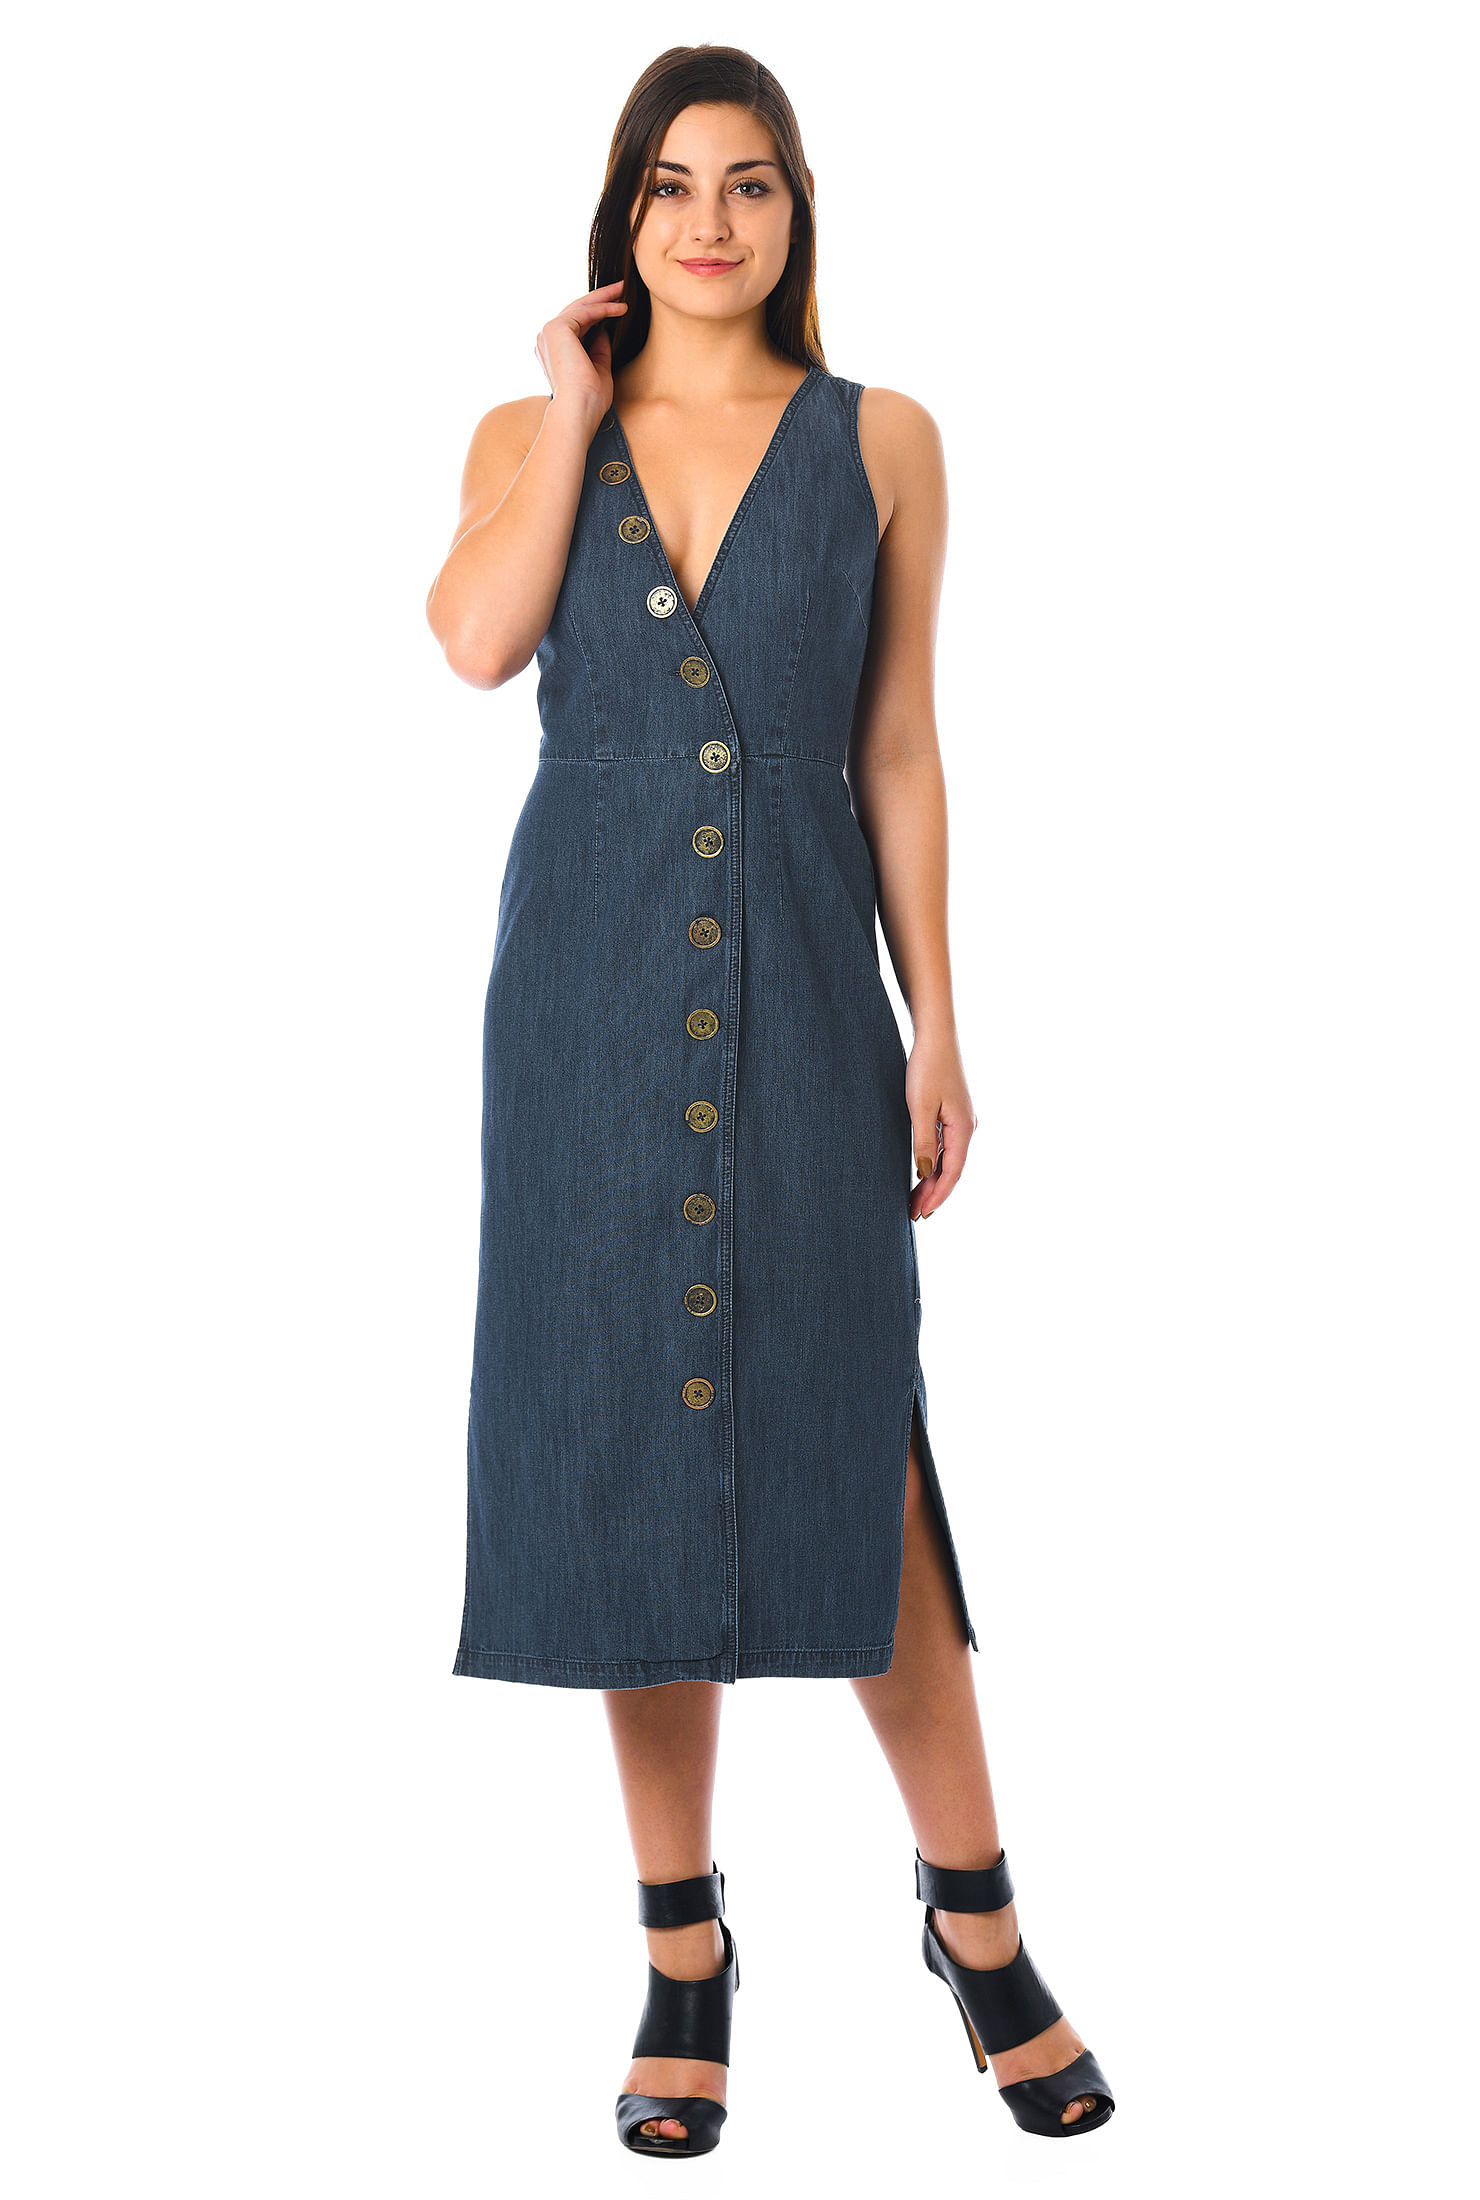 eShakti Women's Front button cotton denim sheath dress